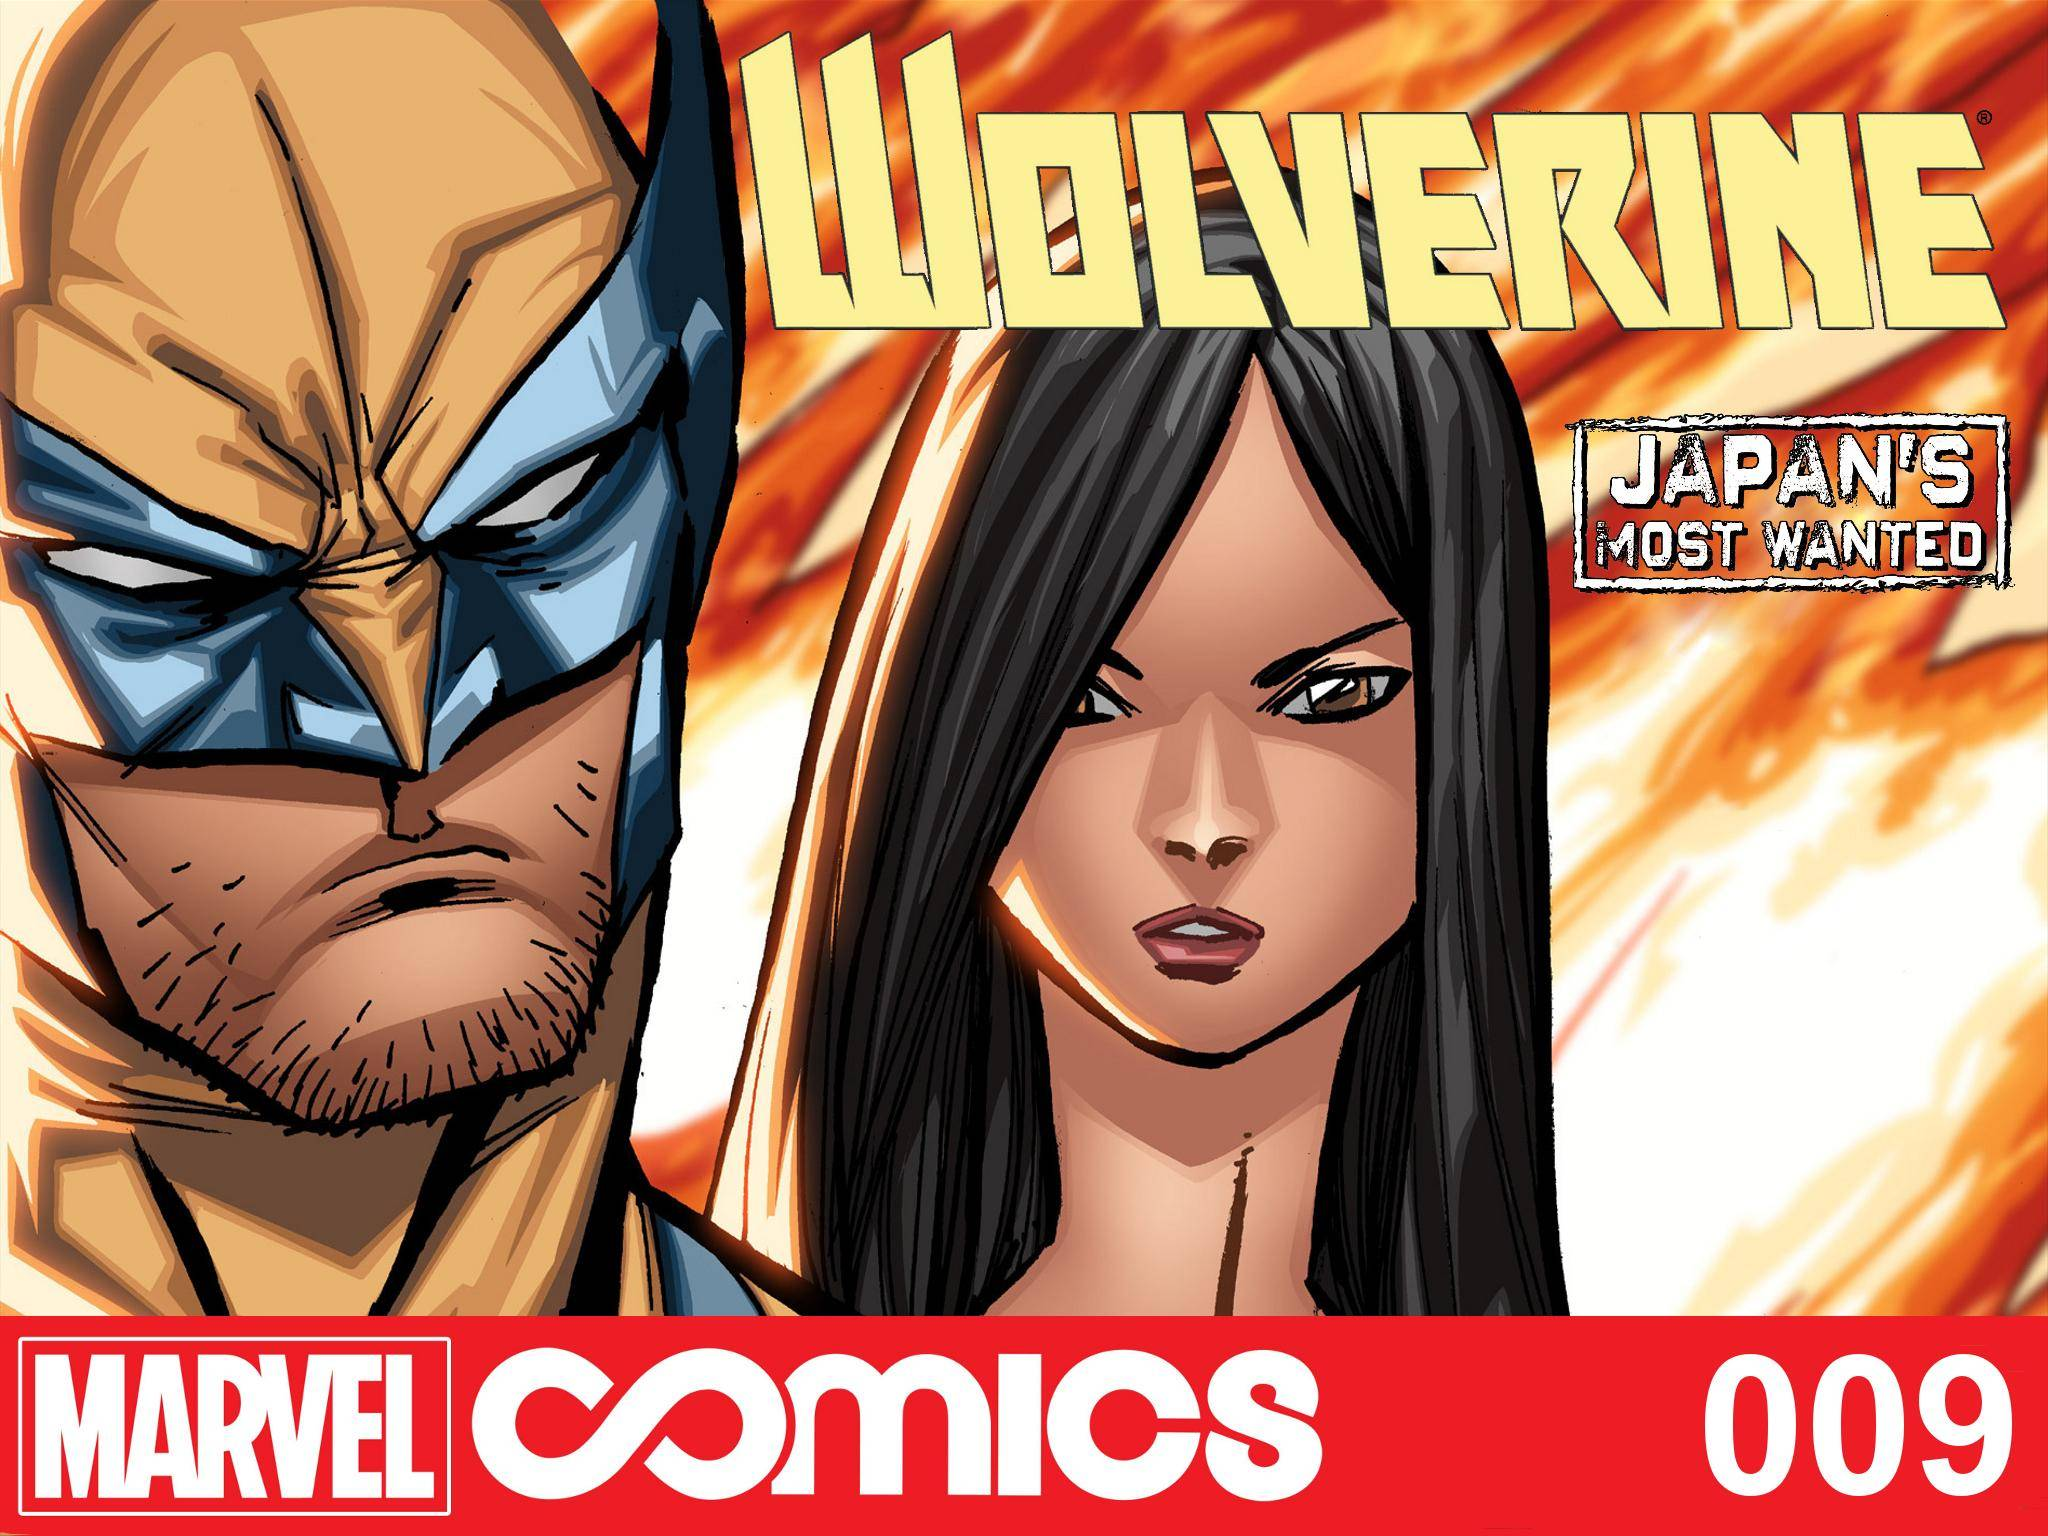 Wolverine - Japans Most Wanted 009 2013 Digital Nahga-Empire